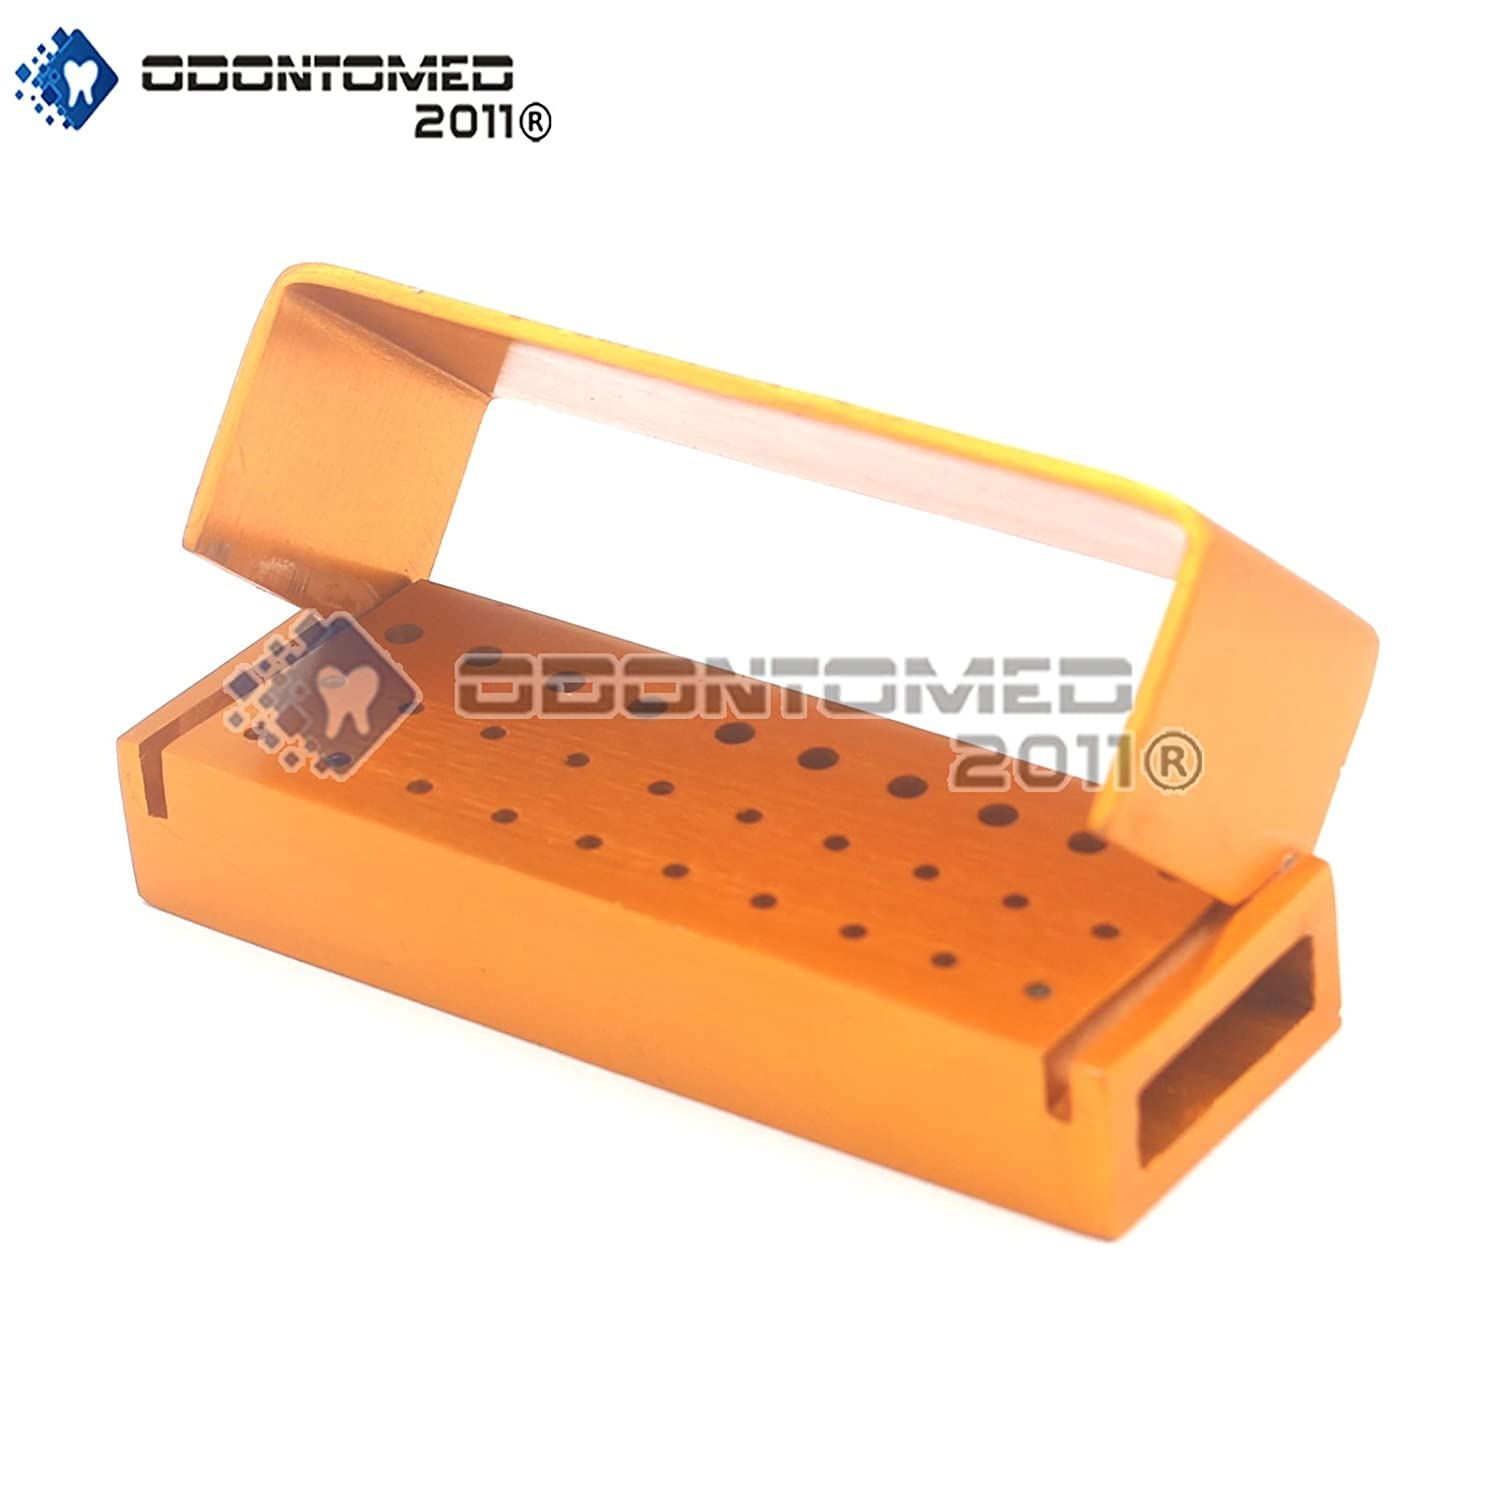 ODONTOMED2011 Dental BUR Holder Block, New FG Drills Aluminium Autoclave Disinfection BURS Holder Block CASE Organizer, 30 Holes Gold Color DN-2083